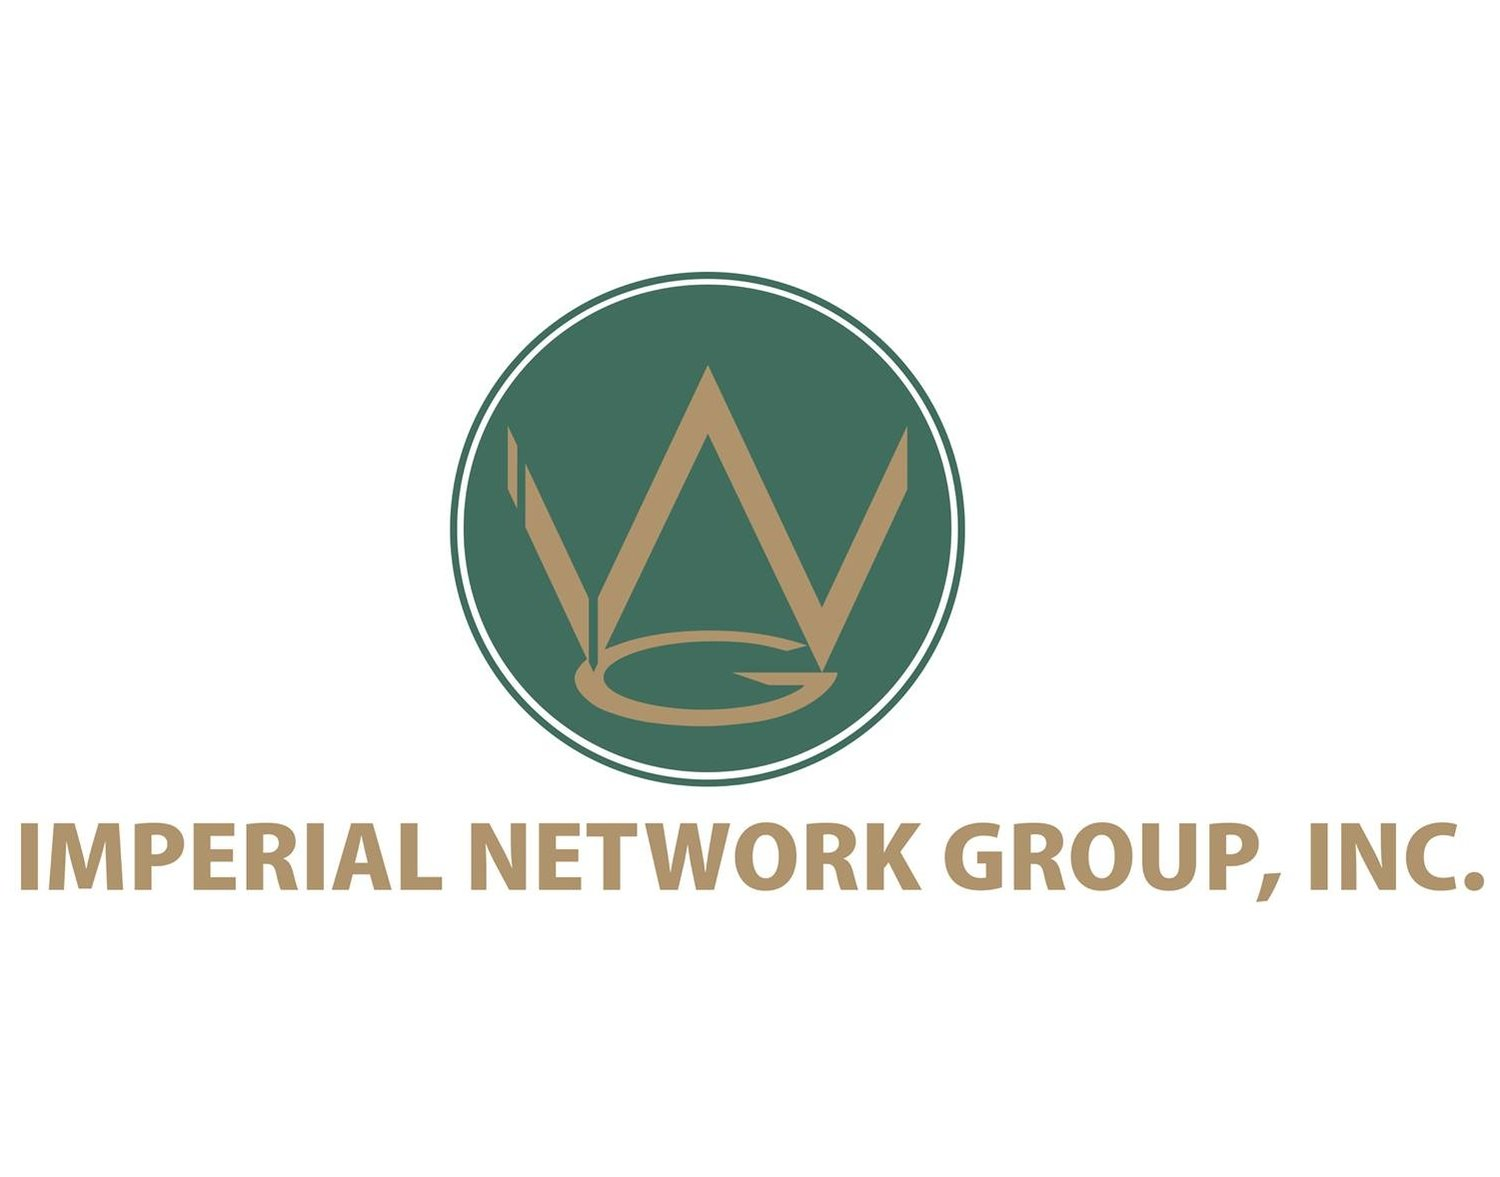 Imperial Network Group